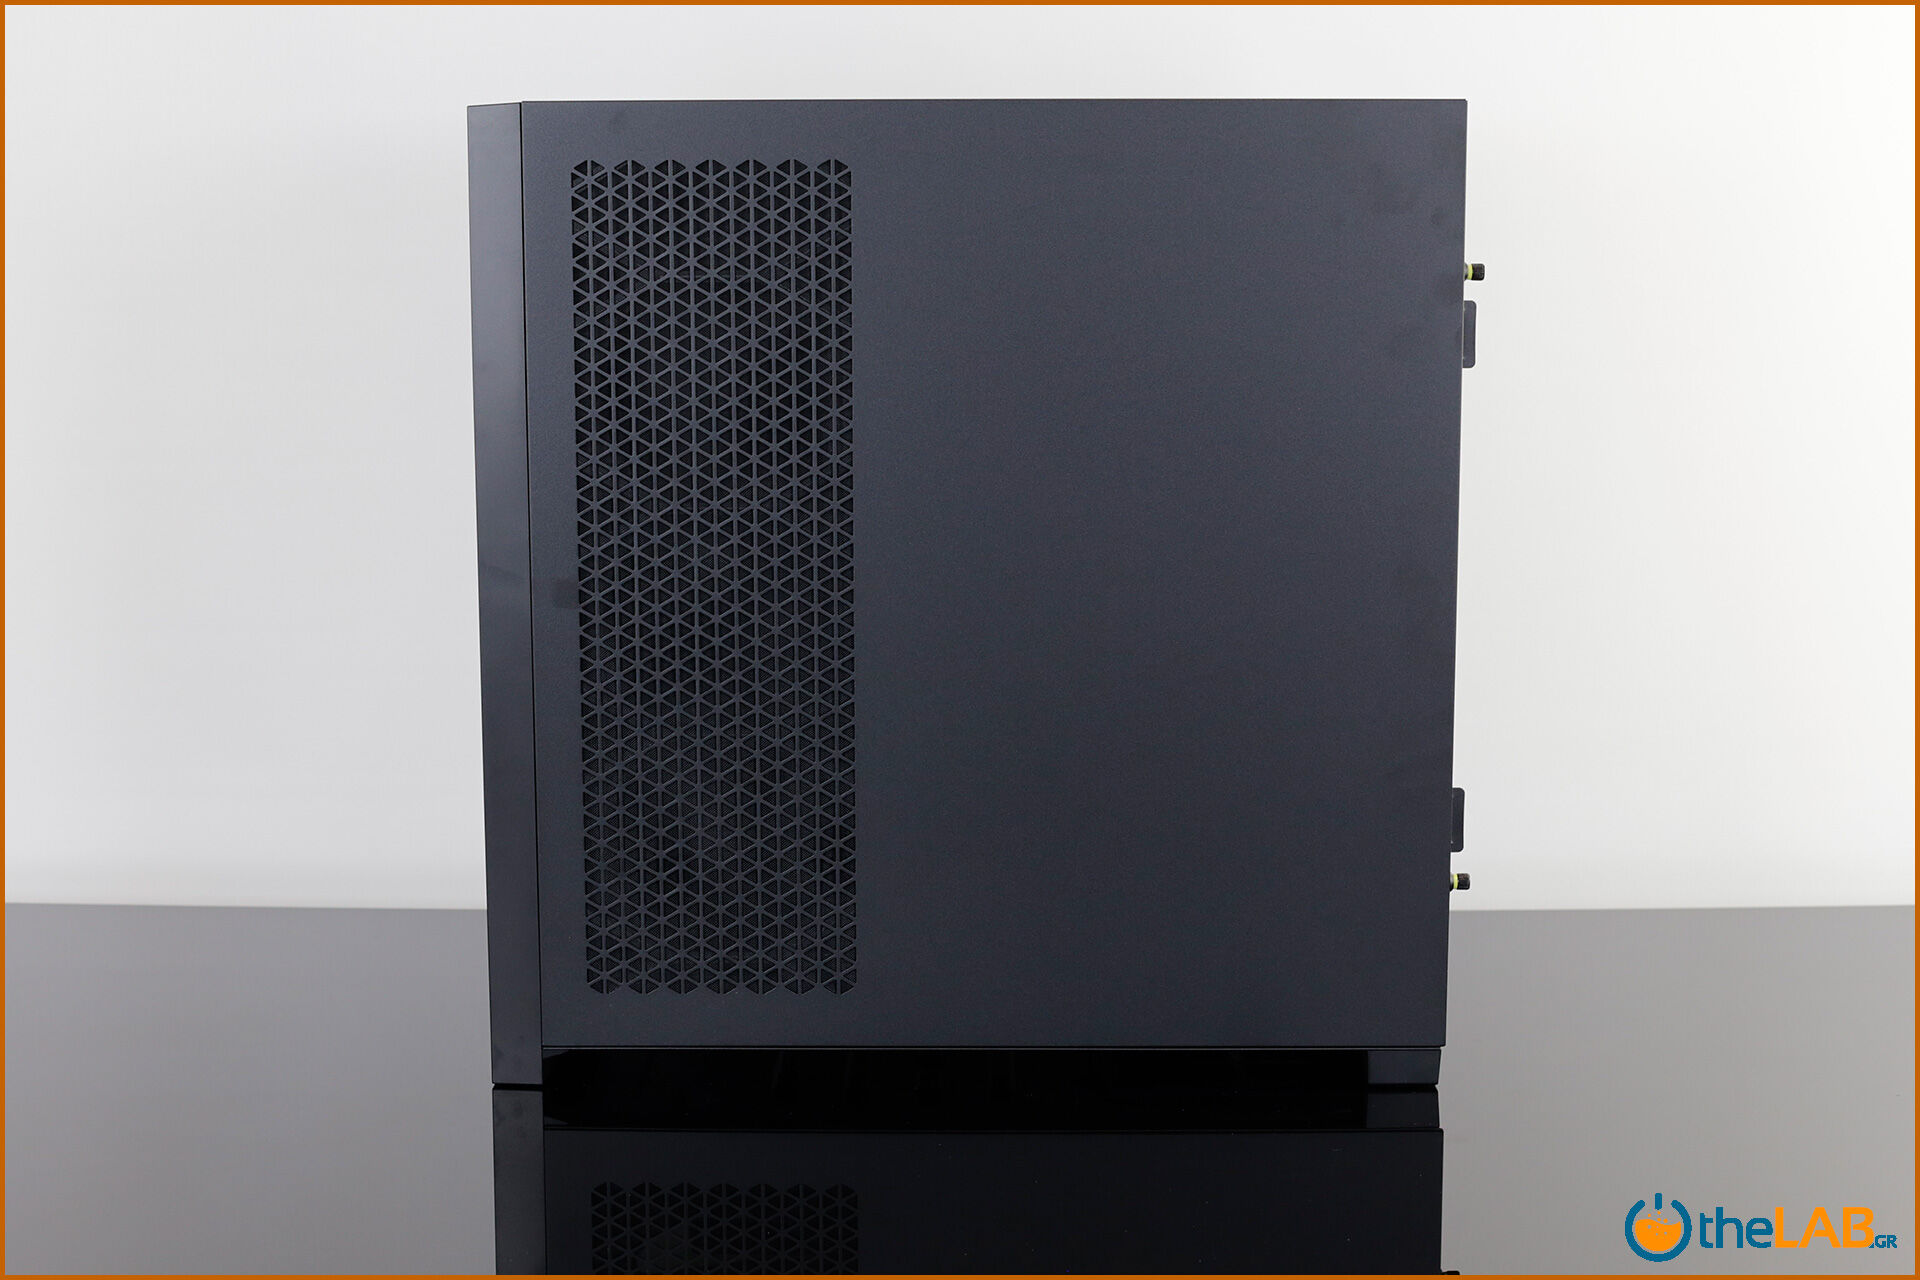 Corsair_icue_5000D__case_smart_exterior_interior_mid_tower_gaming_case_smart_review_image638.jpg